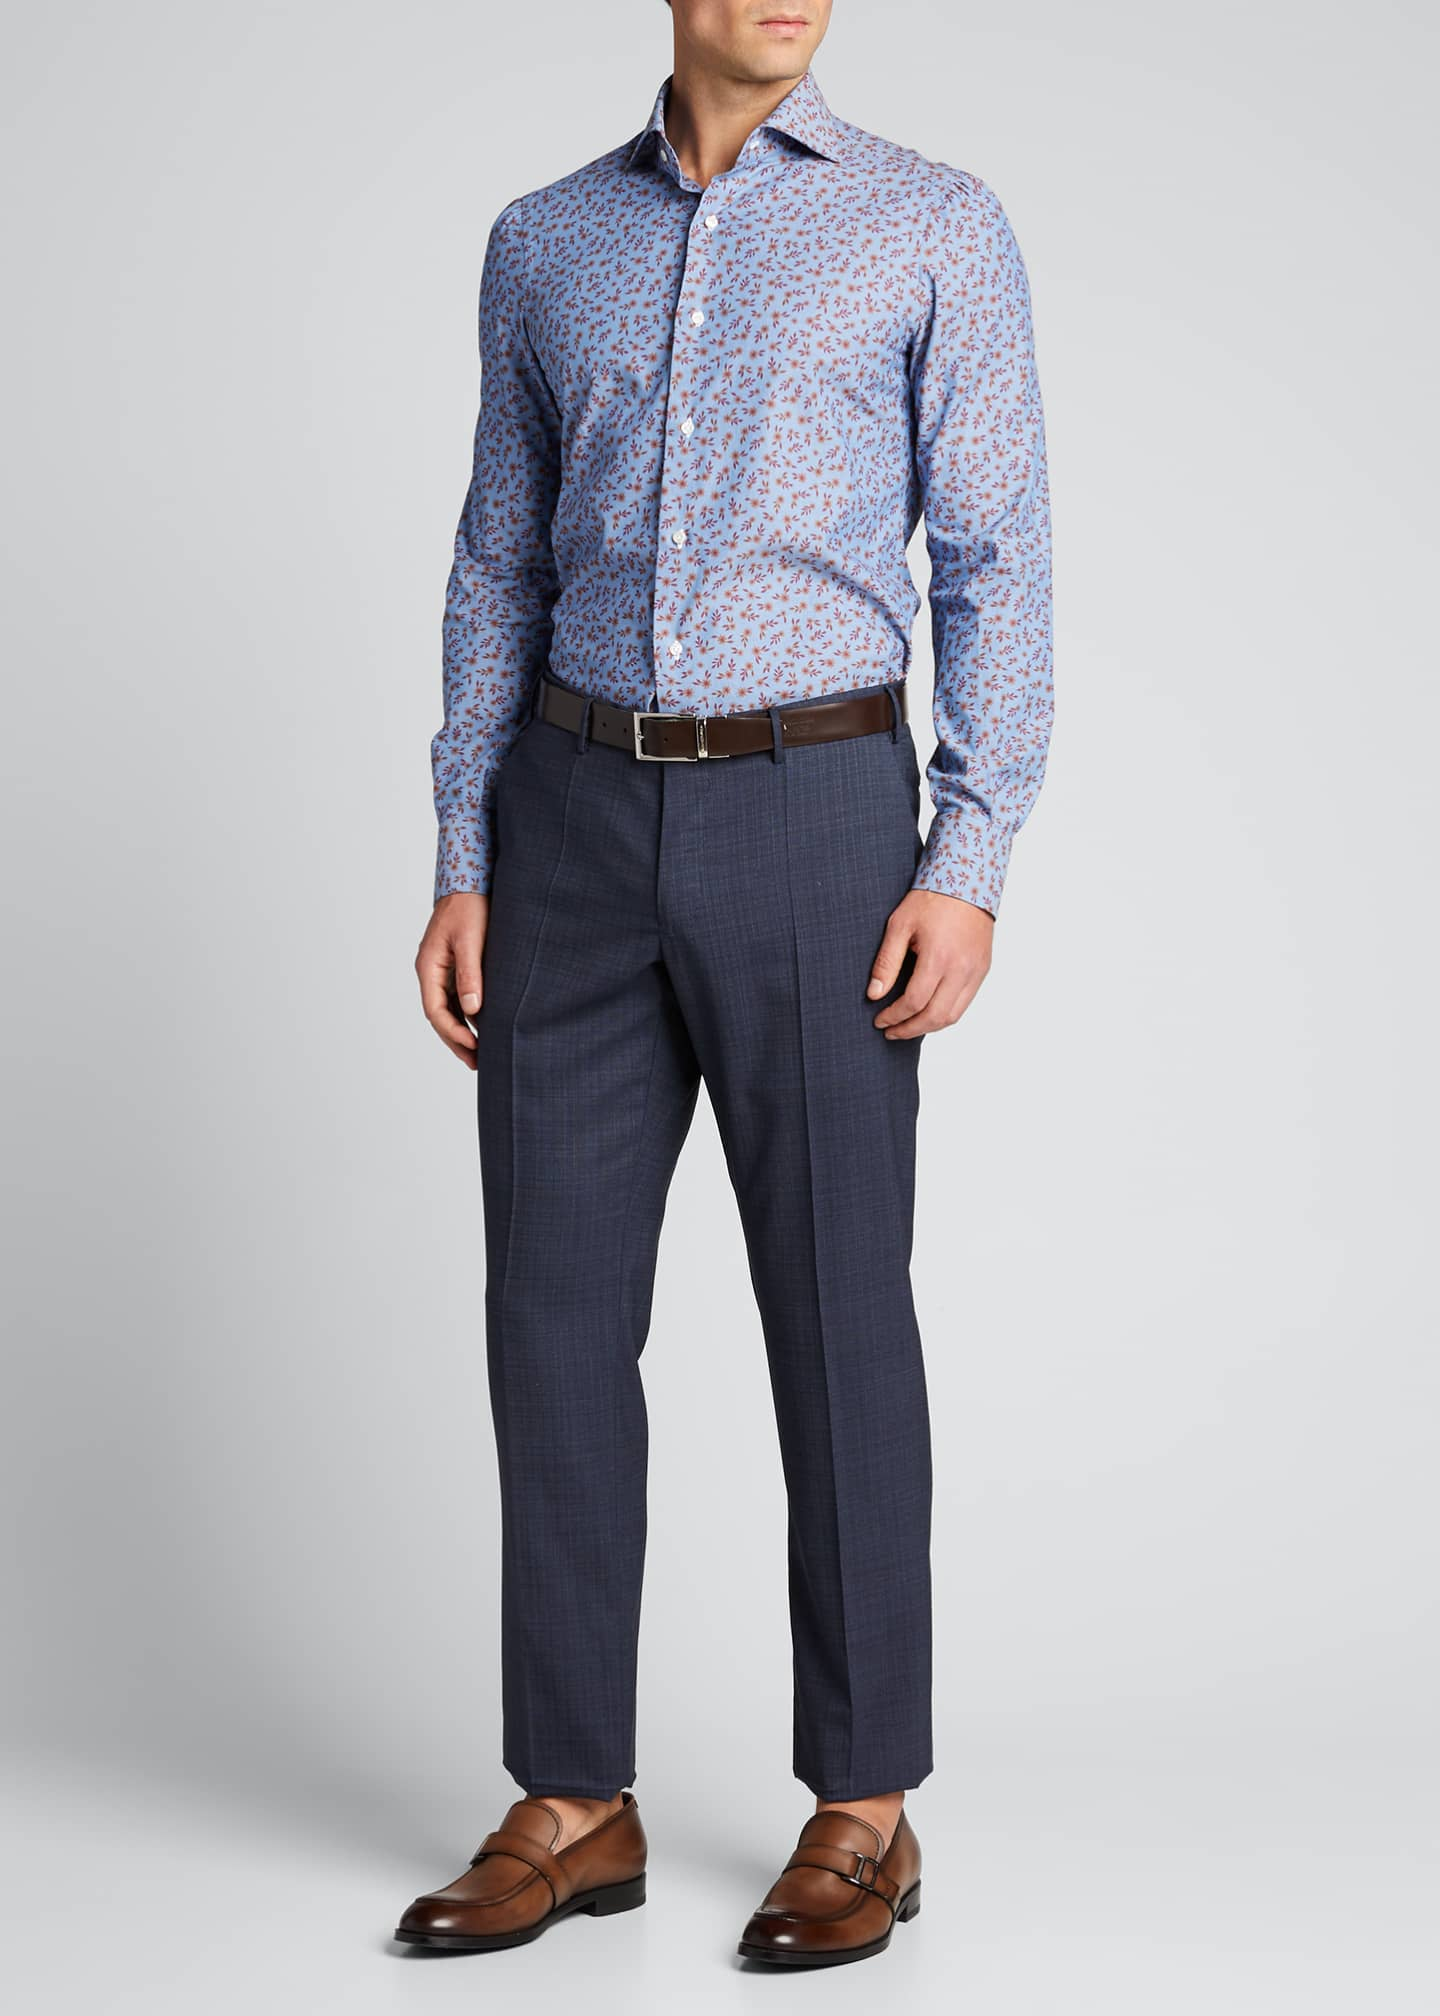 Isaia Men's Floral Chambray Sport Shirt